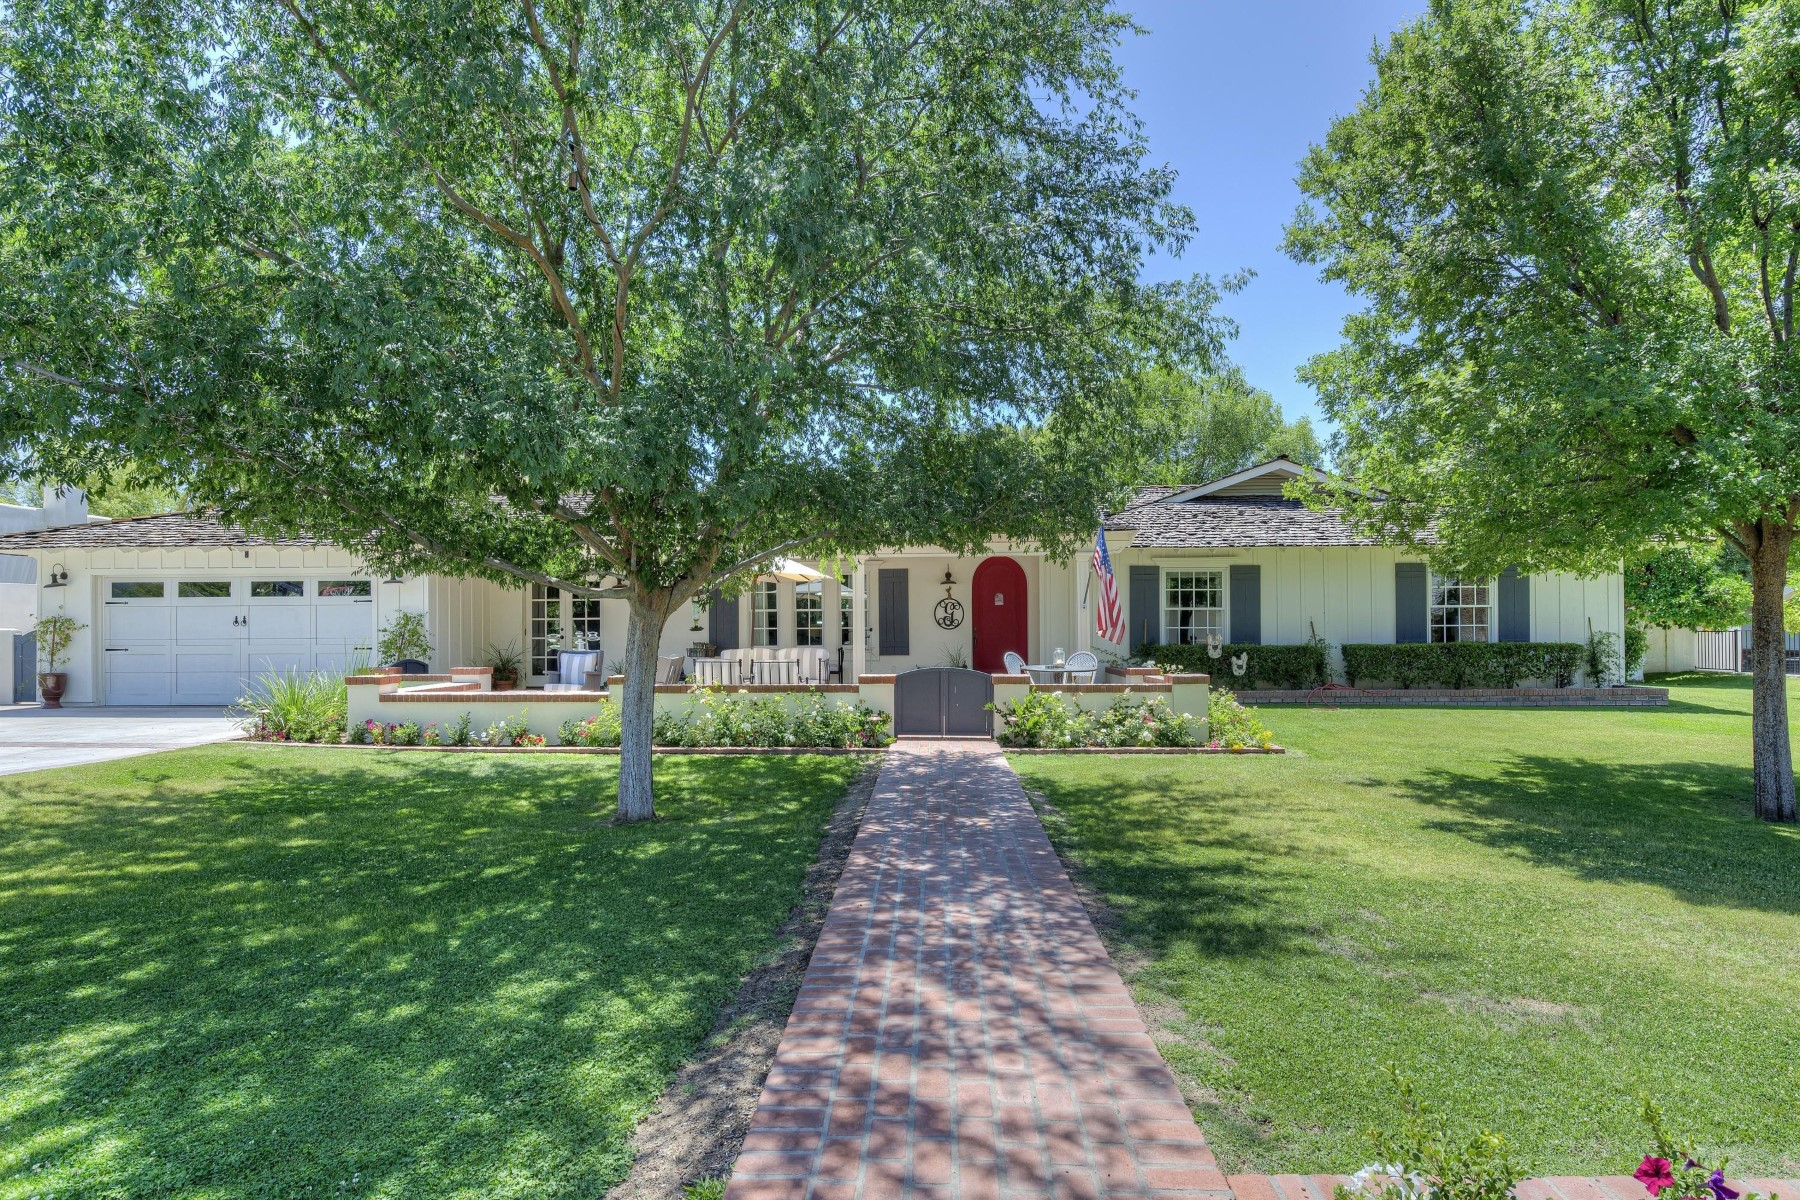 단독 가정 주택 용 매매 에 Beautifully updated ranch home in the magical Hilker Estates 4115 N 50th Pl Phoenix, 아리조나, 85018 미국